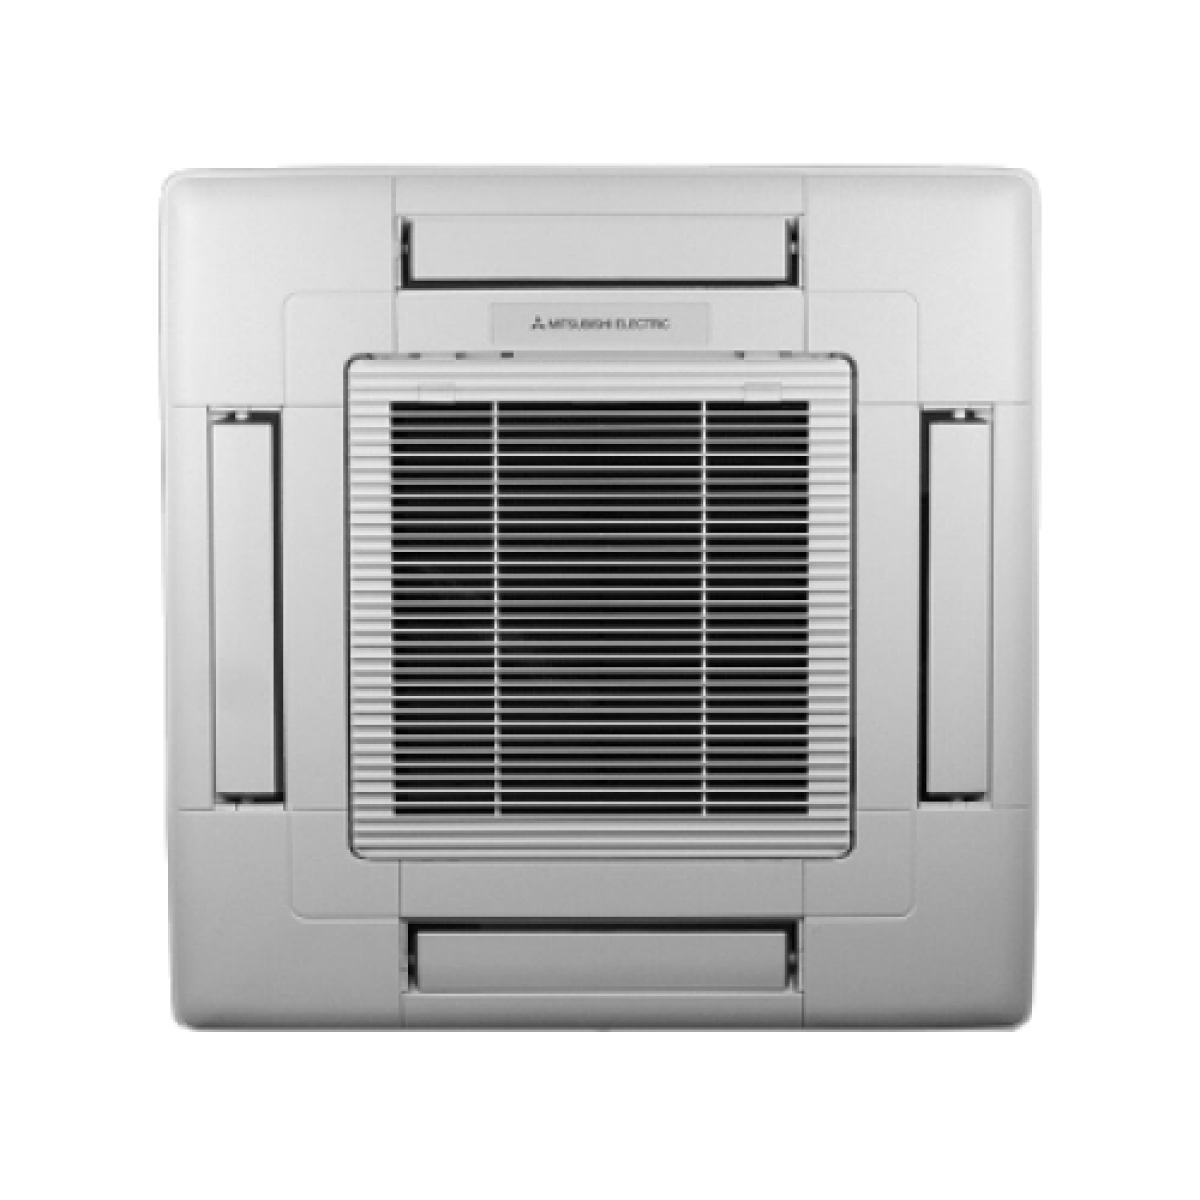 Indoor Heating And Cooling Units : Mxz b na split air conditioning and heating k btu